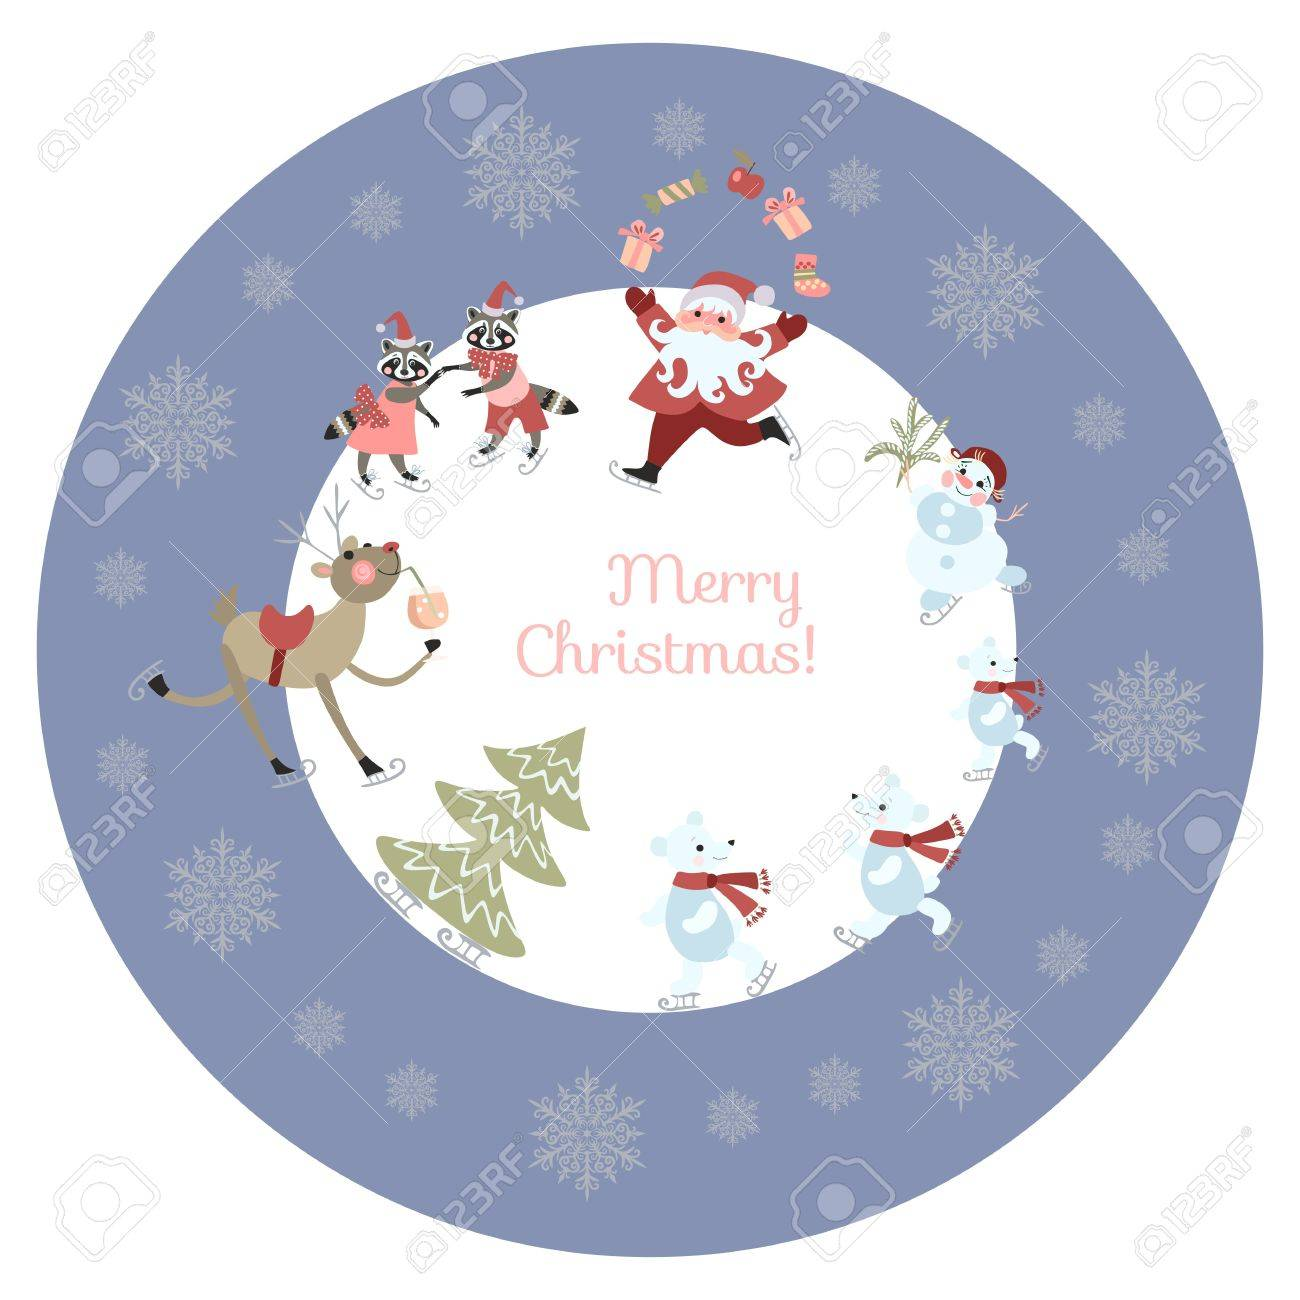 round greeting card or decorative plate merry christmas cute cartoon santa claus reindeer with